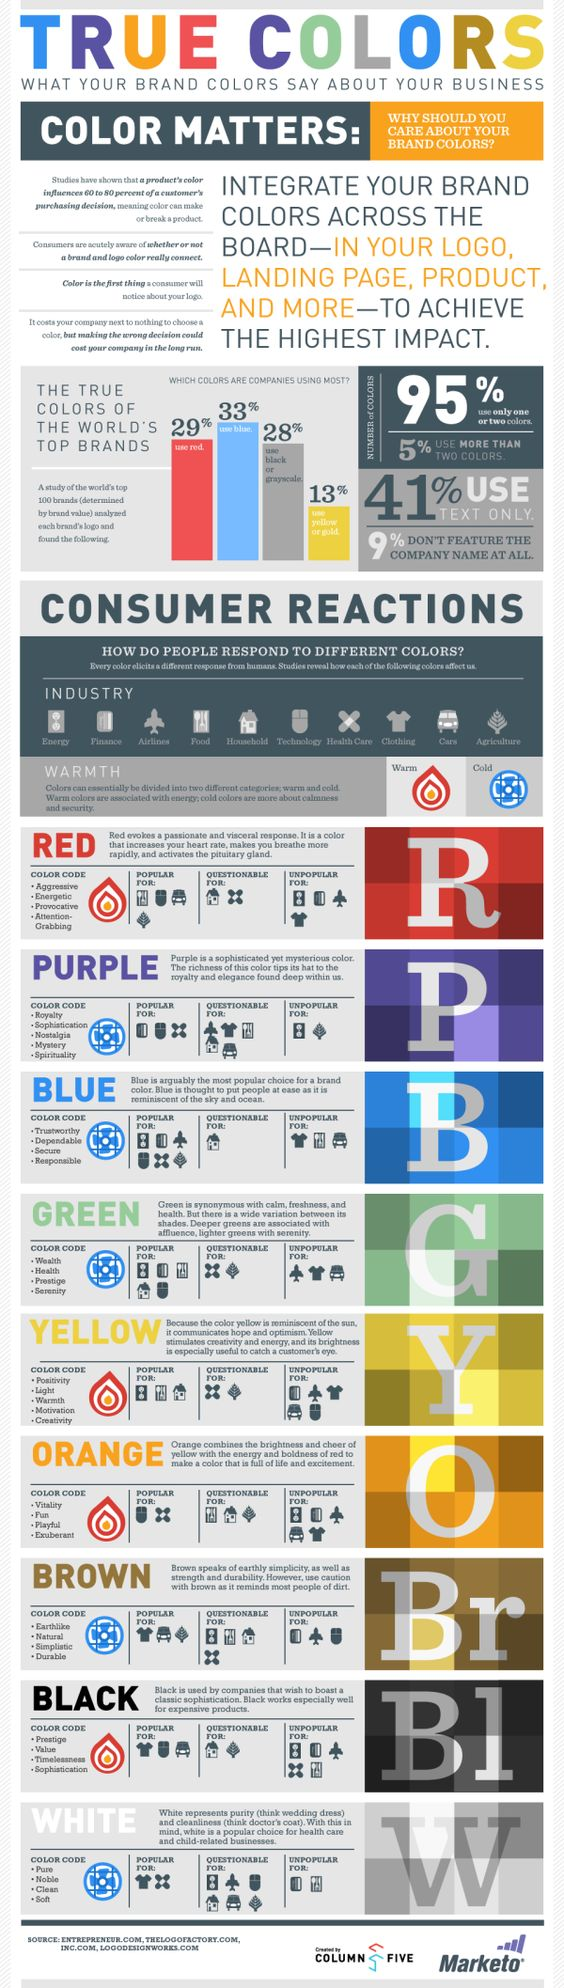 True Colors: What Your Brand Colors Say About Your Business infographic